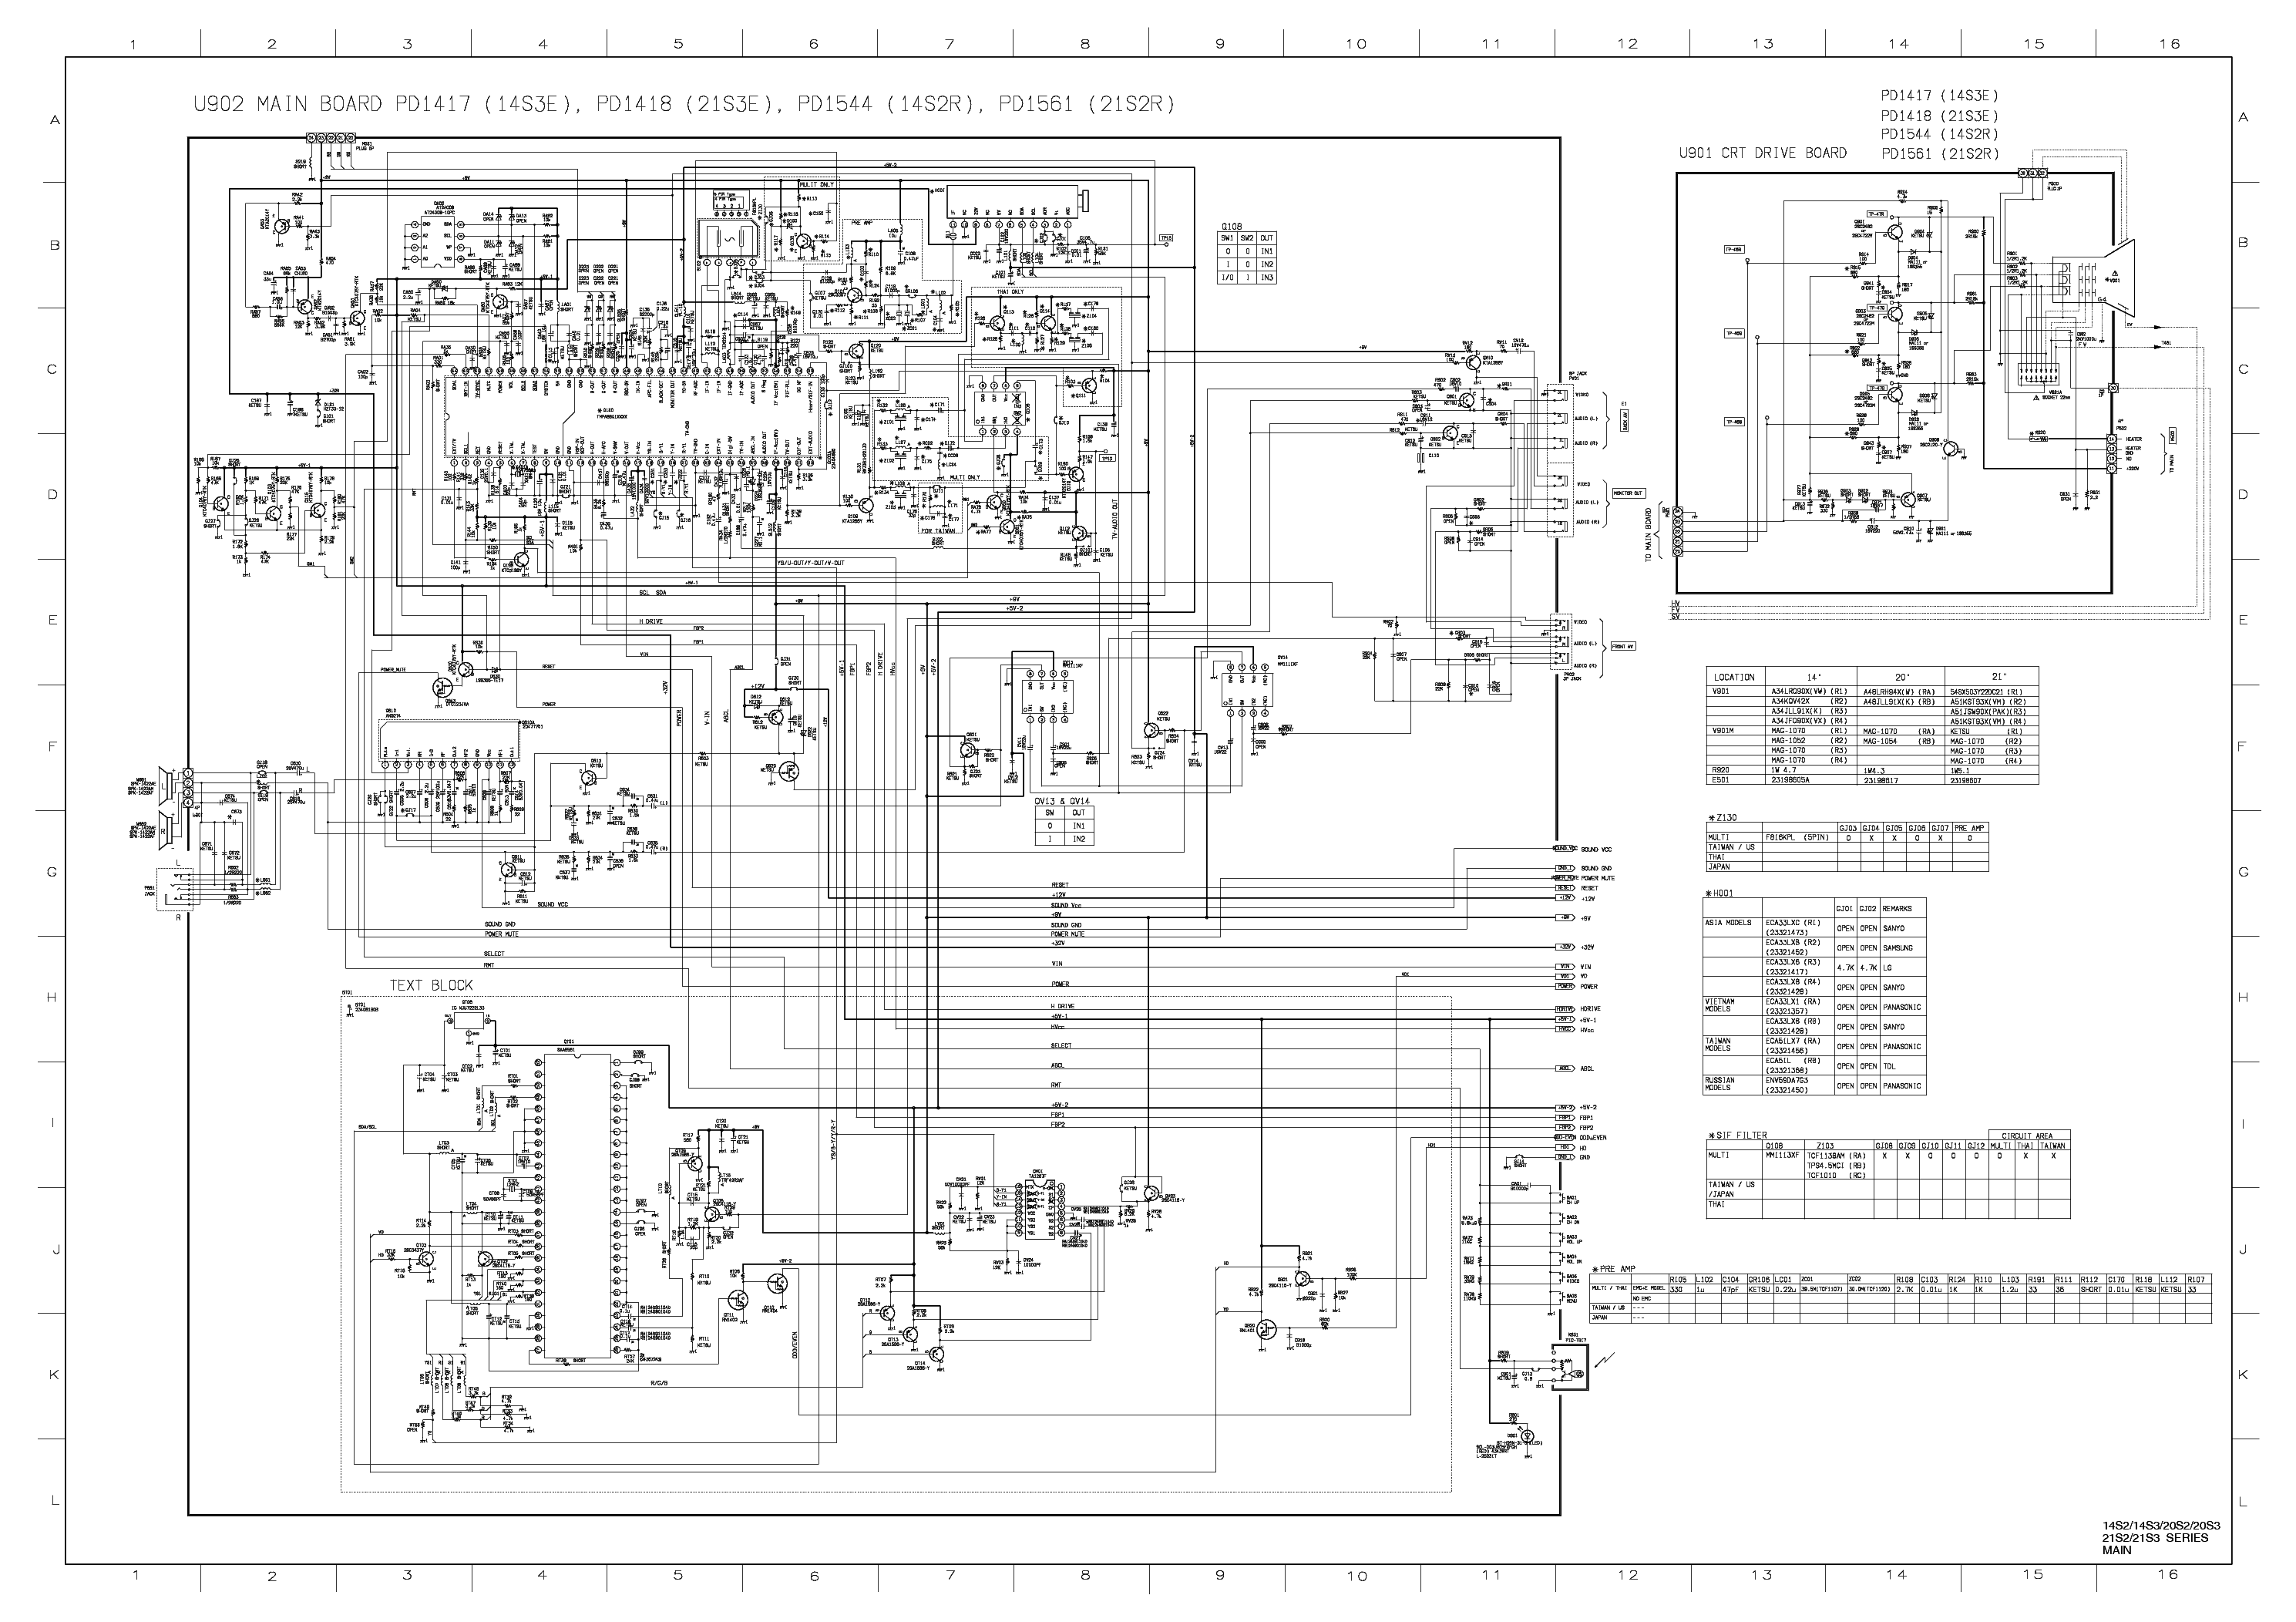 circuit board labeled diagram of a toshiba tv toshiba tv schematic diagrams - wiring diagram